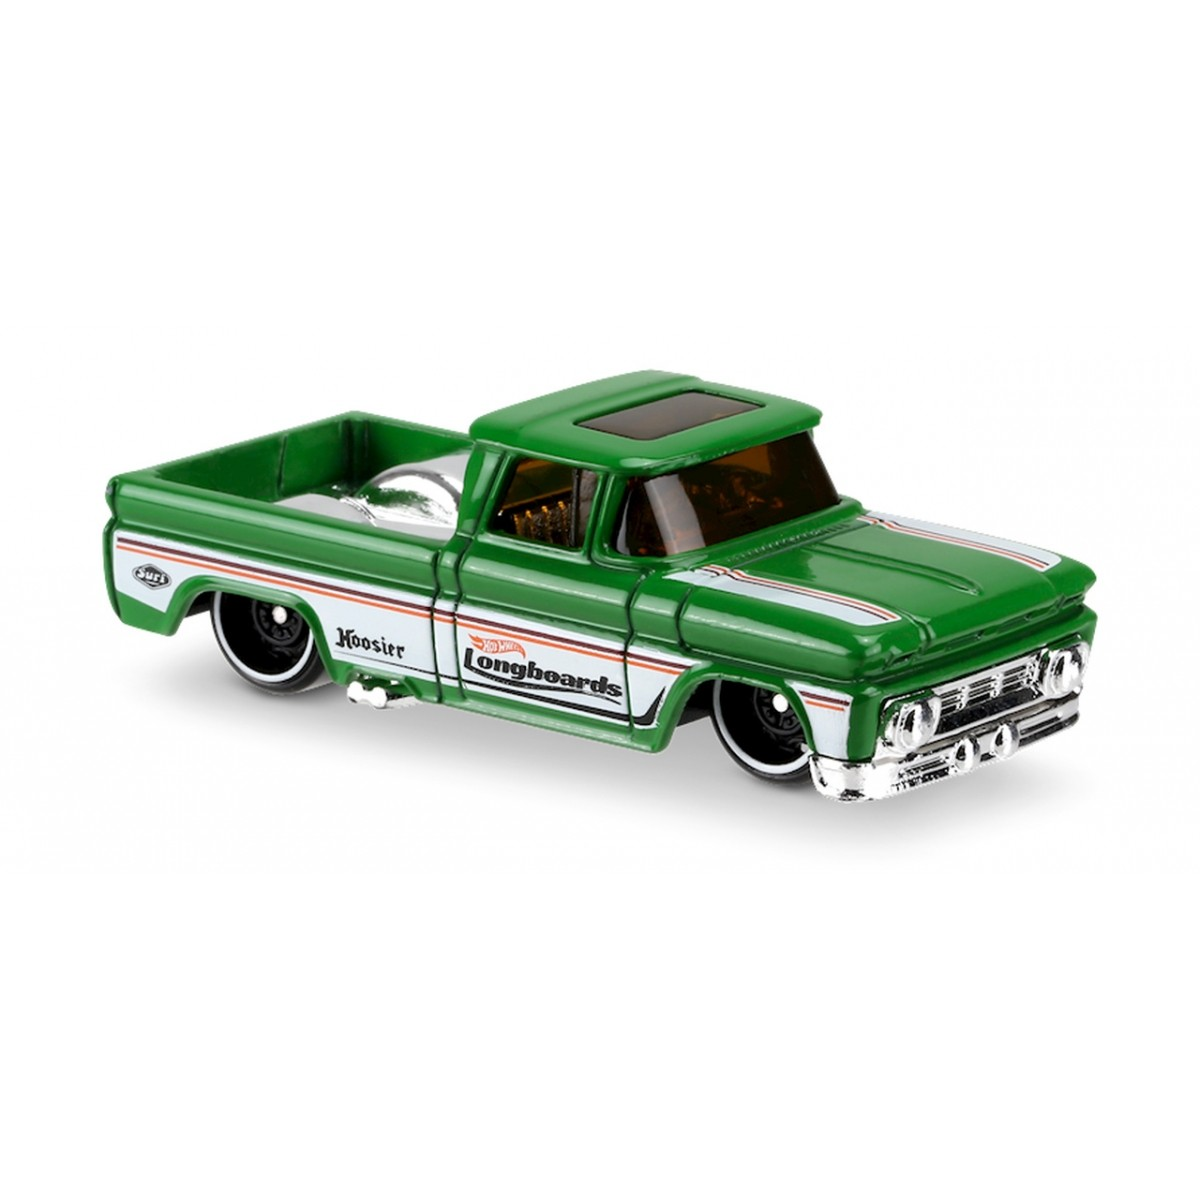 Carrinho Hot Wheels: Custom '62 Chevy Pickup Verde